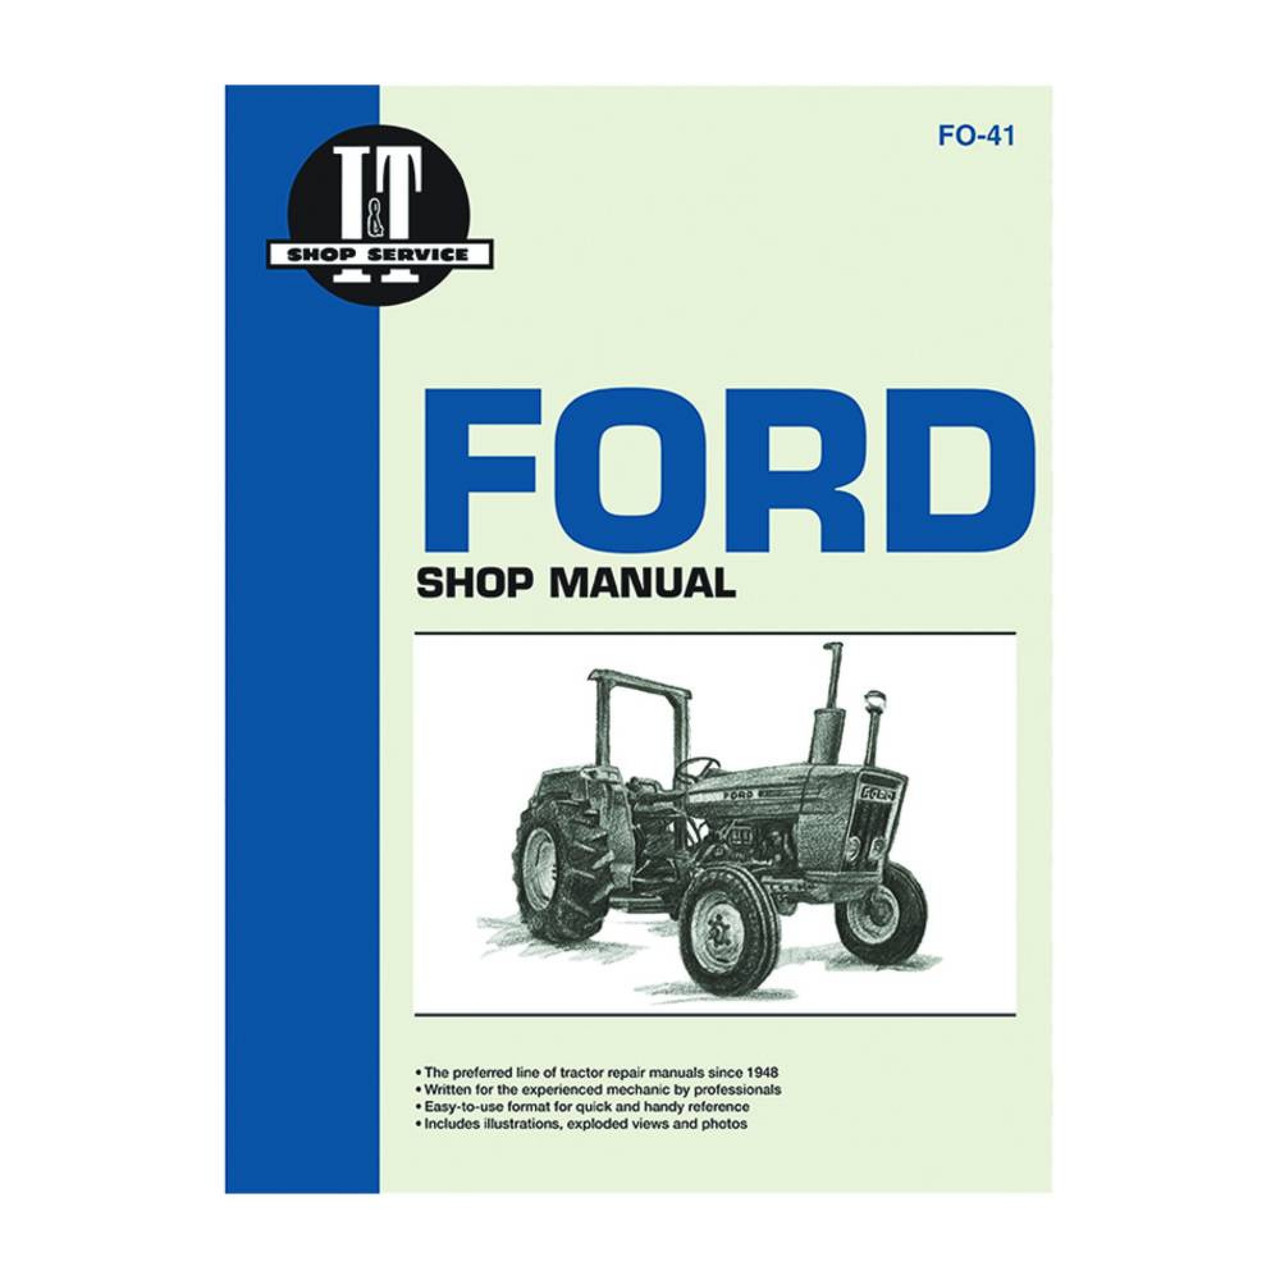 hight resolution of service manual ford new holland tractor fo 41 2310 2600 2610 3600 2310 ford tractor wiring harness diagram